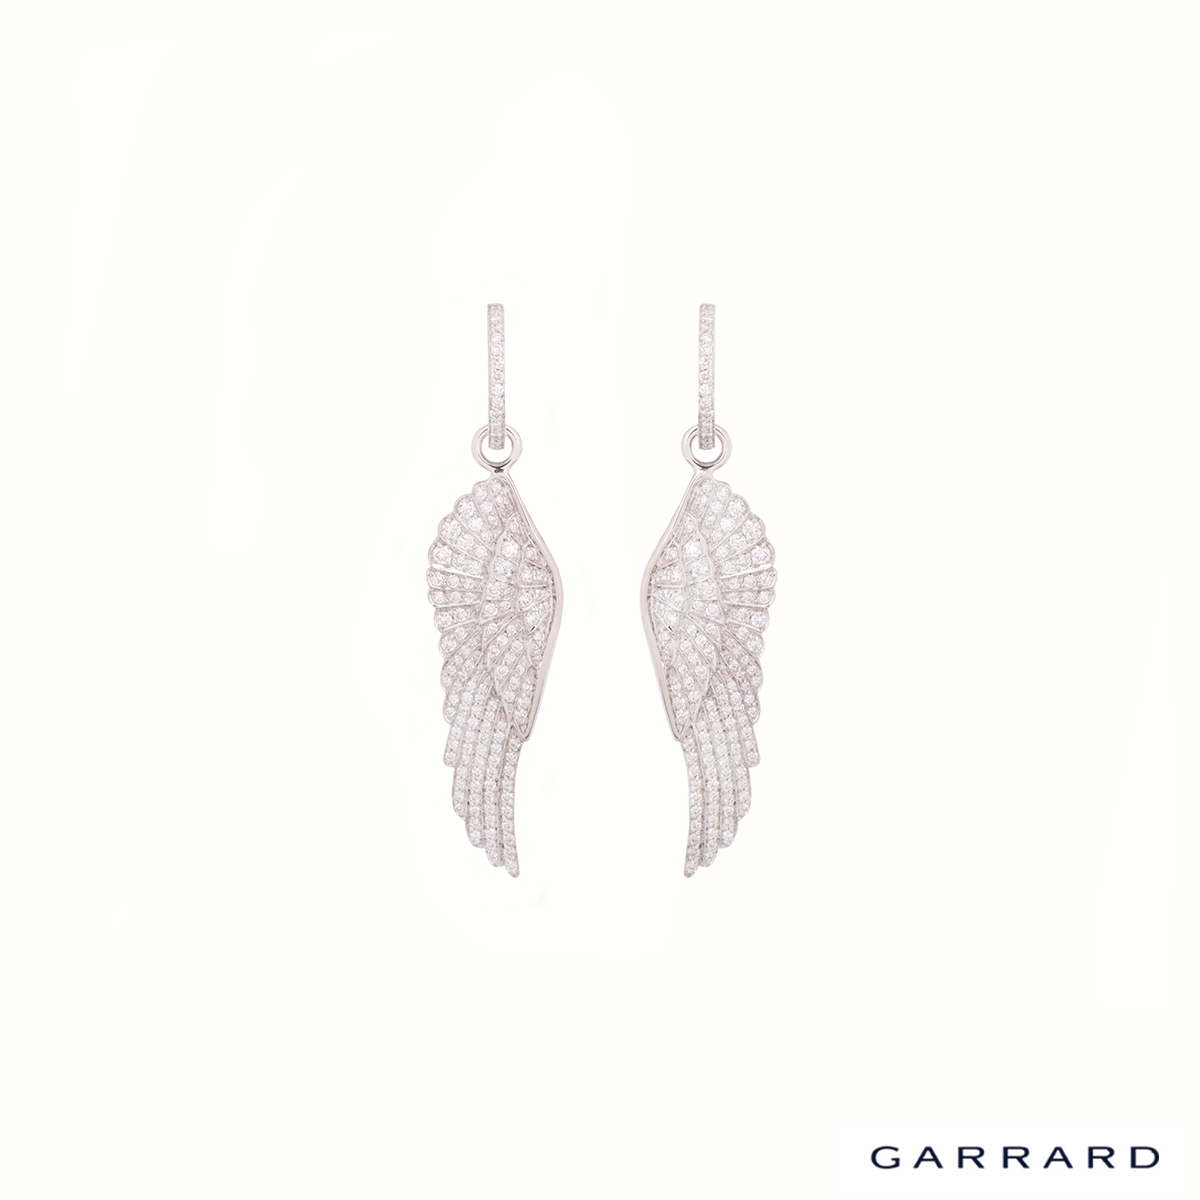 Garrard White Gold Diamond Wing Collection Earrings